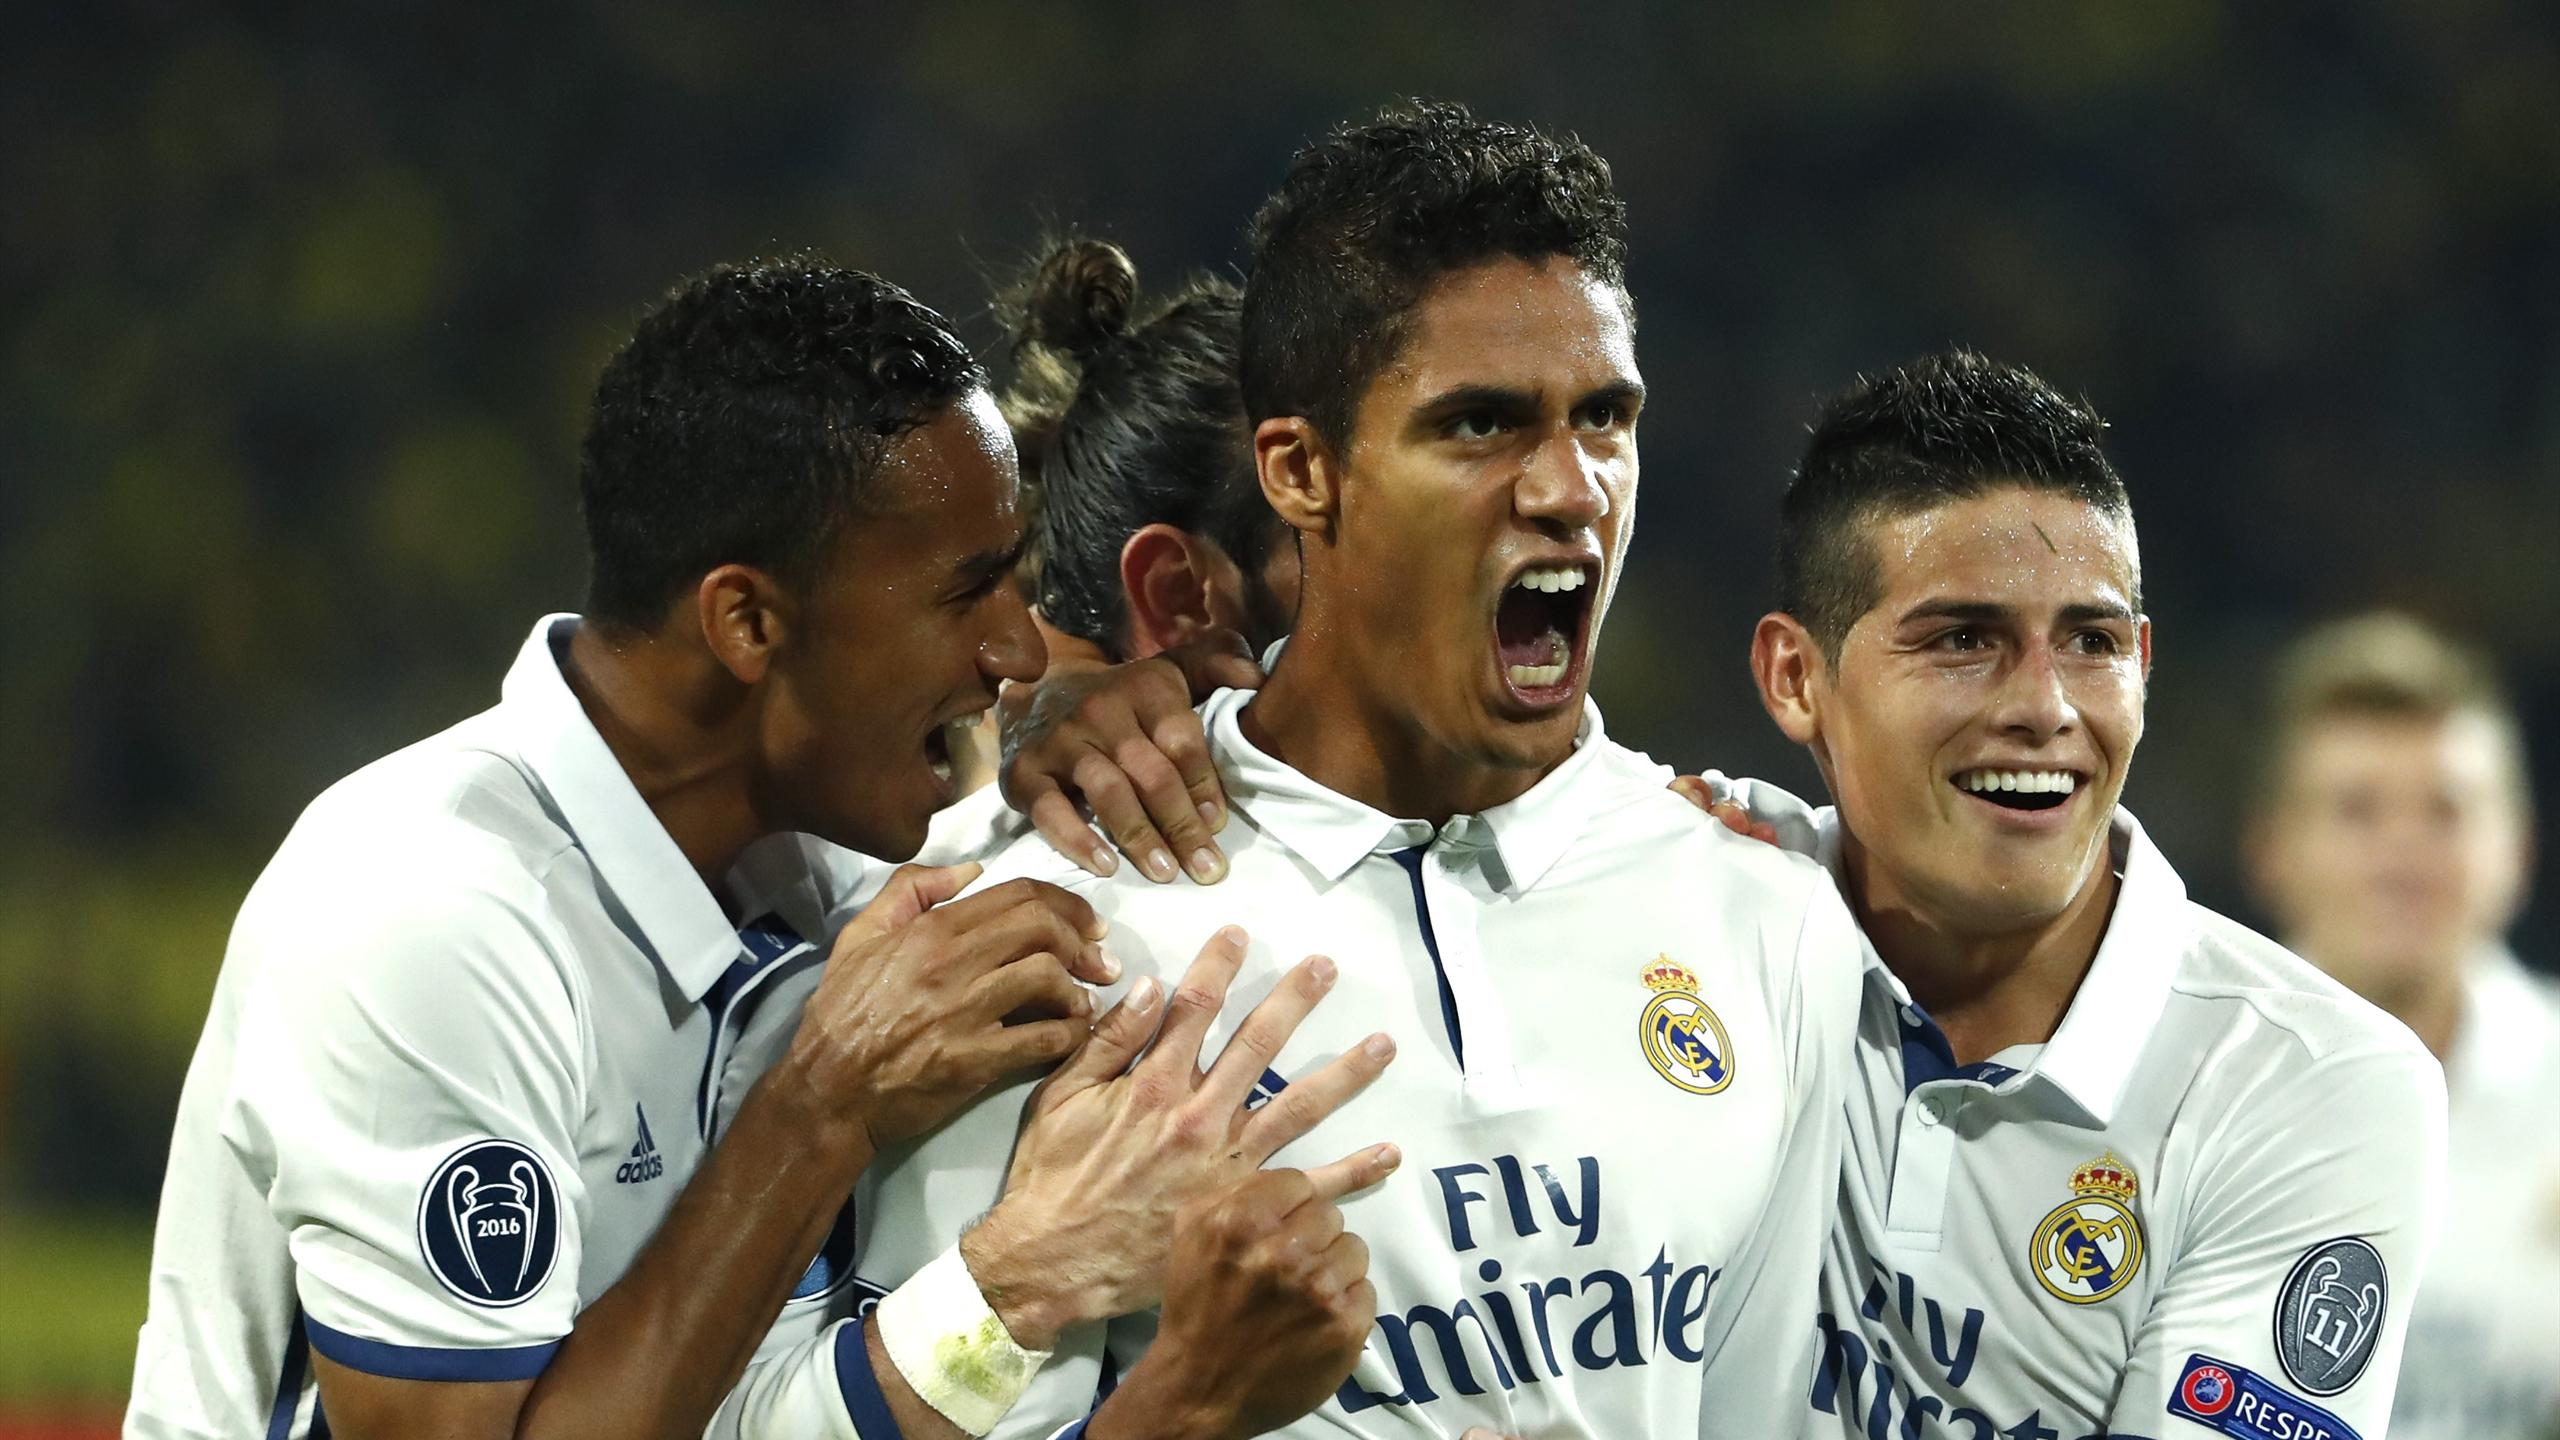 Raphaël Varane (Real Madrid)